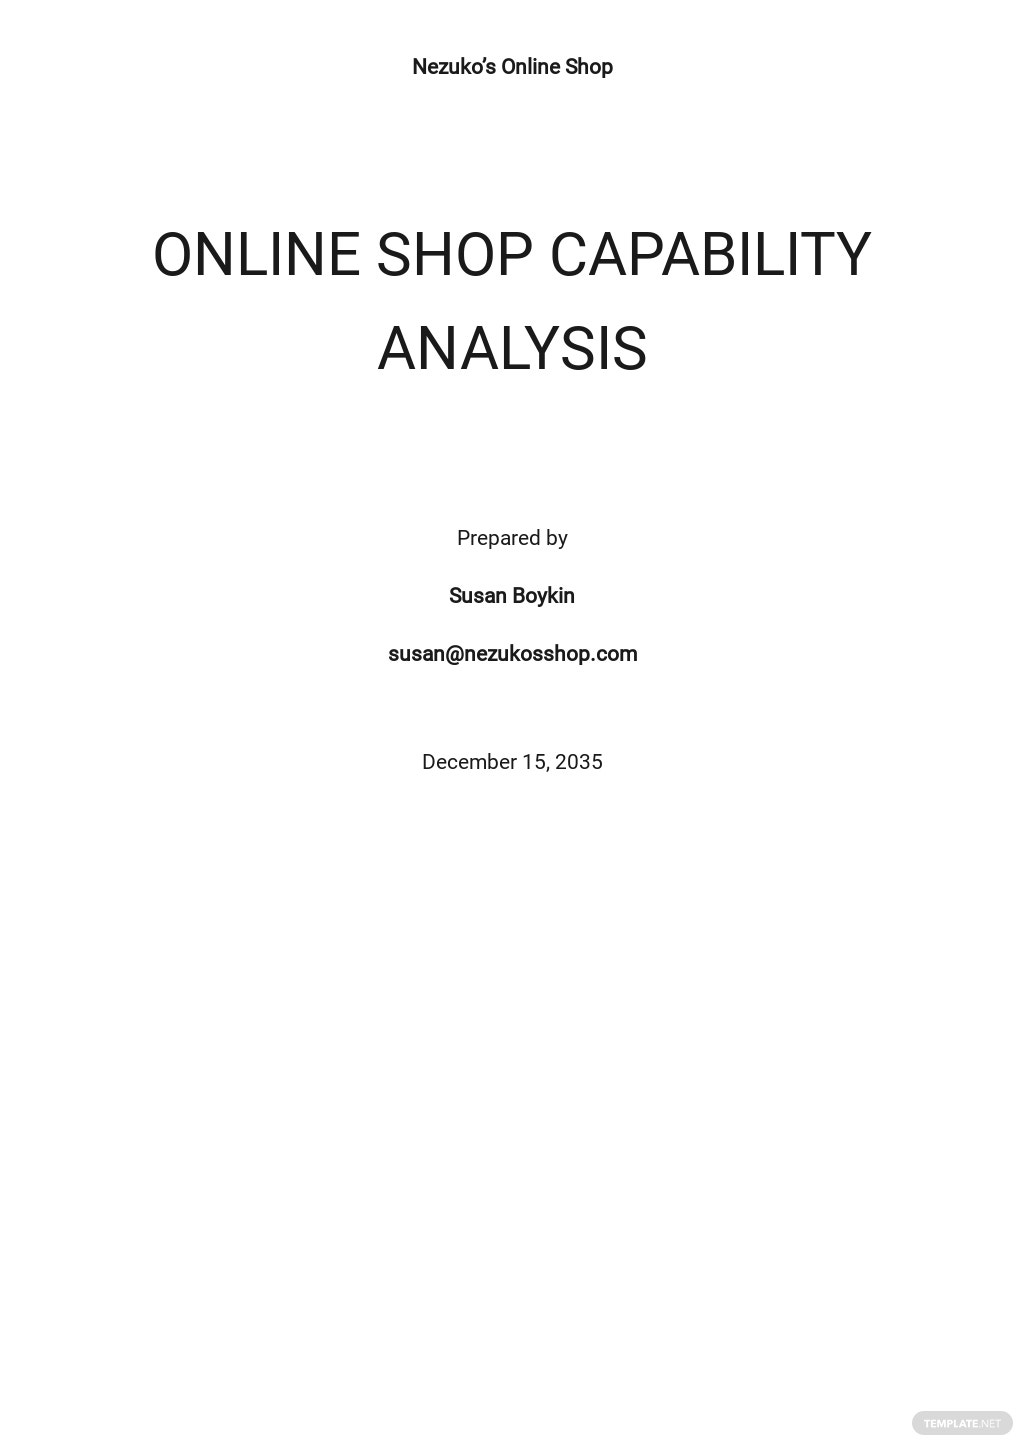 Capabilities Analysis Template